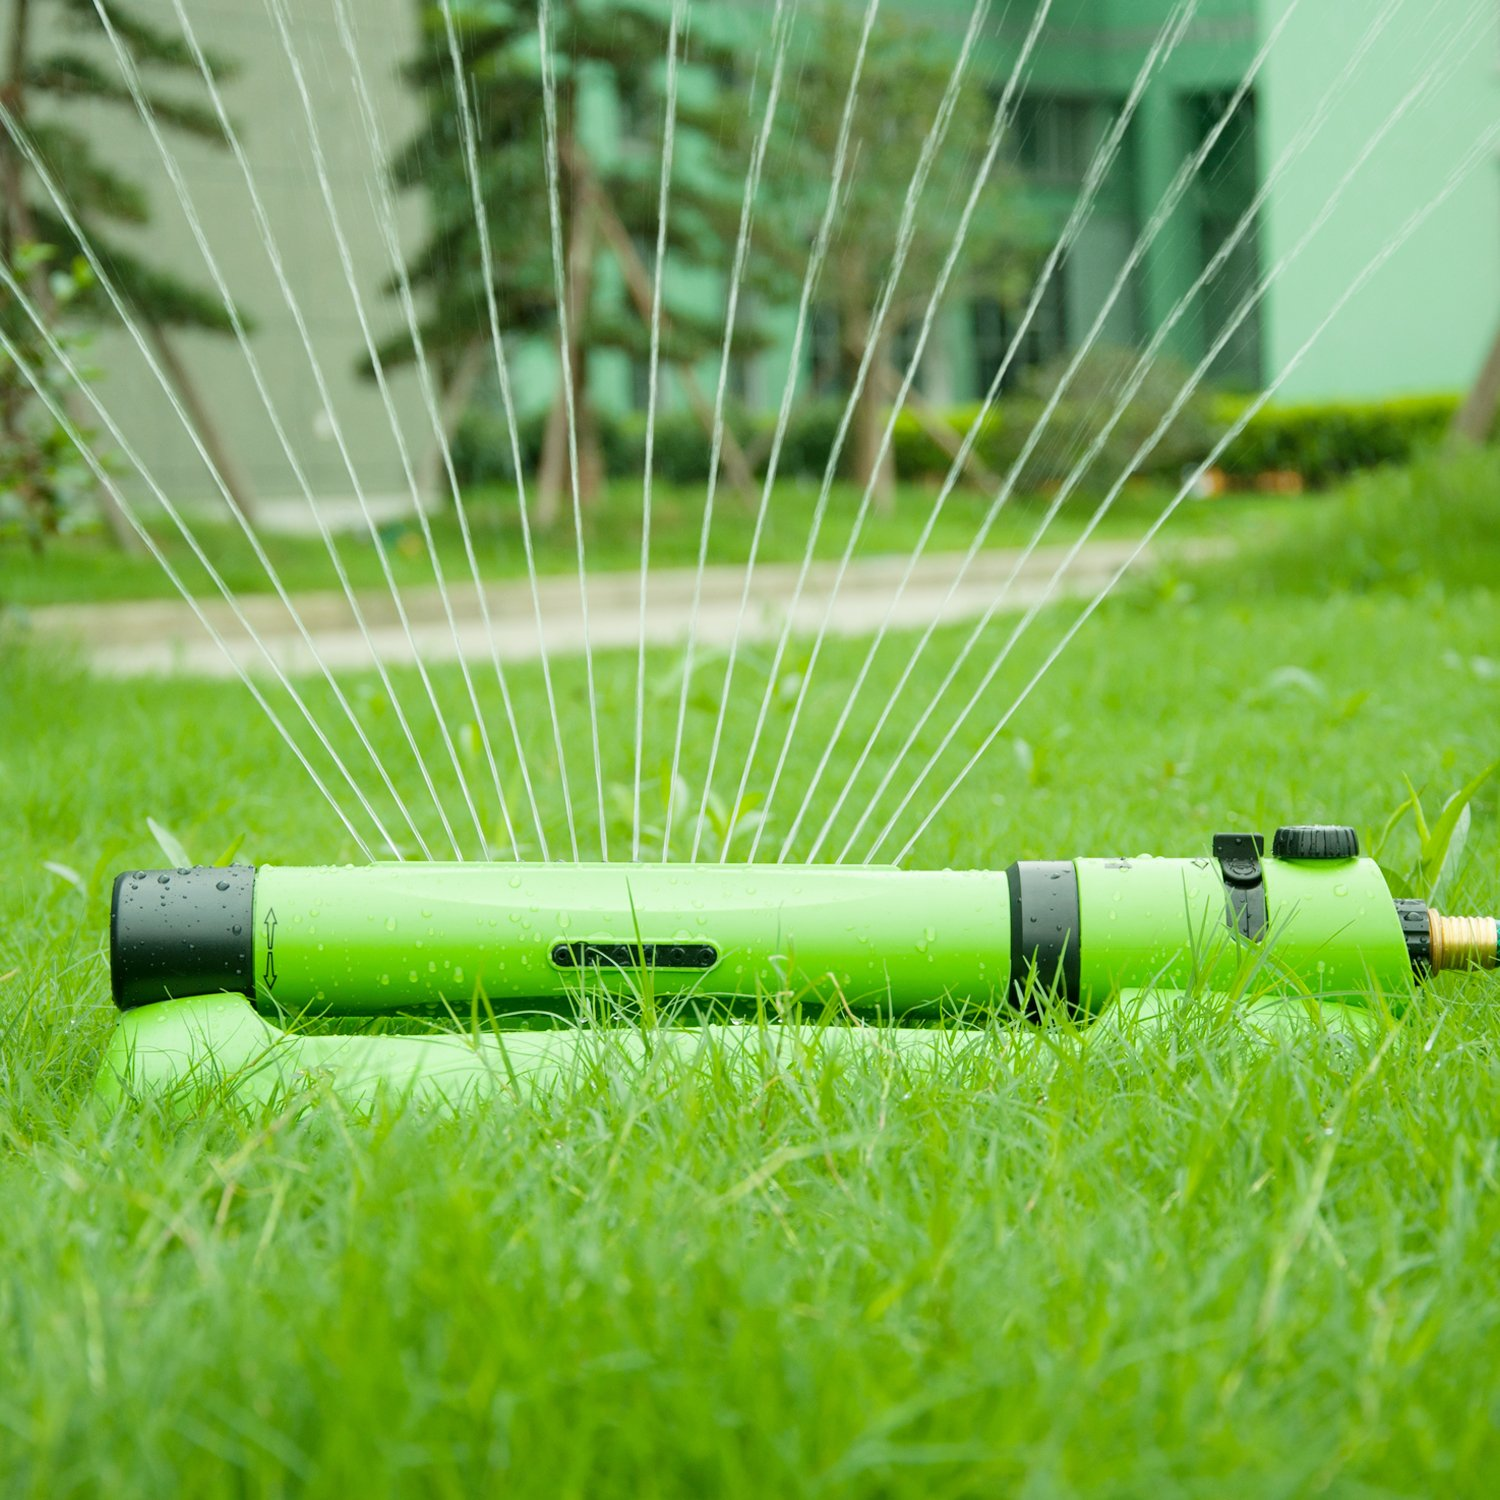 YeStar Garden Lawn Oscillating Sprinkler, Luxury 3 in 1 Yard Sprinkler System with One Touch Width Control & Flow Control, 3-way Adjustment, Waters Up to 3,000 Sq. Ft.